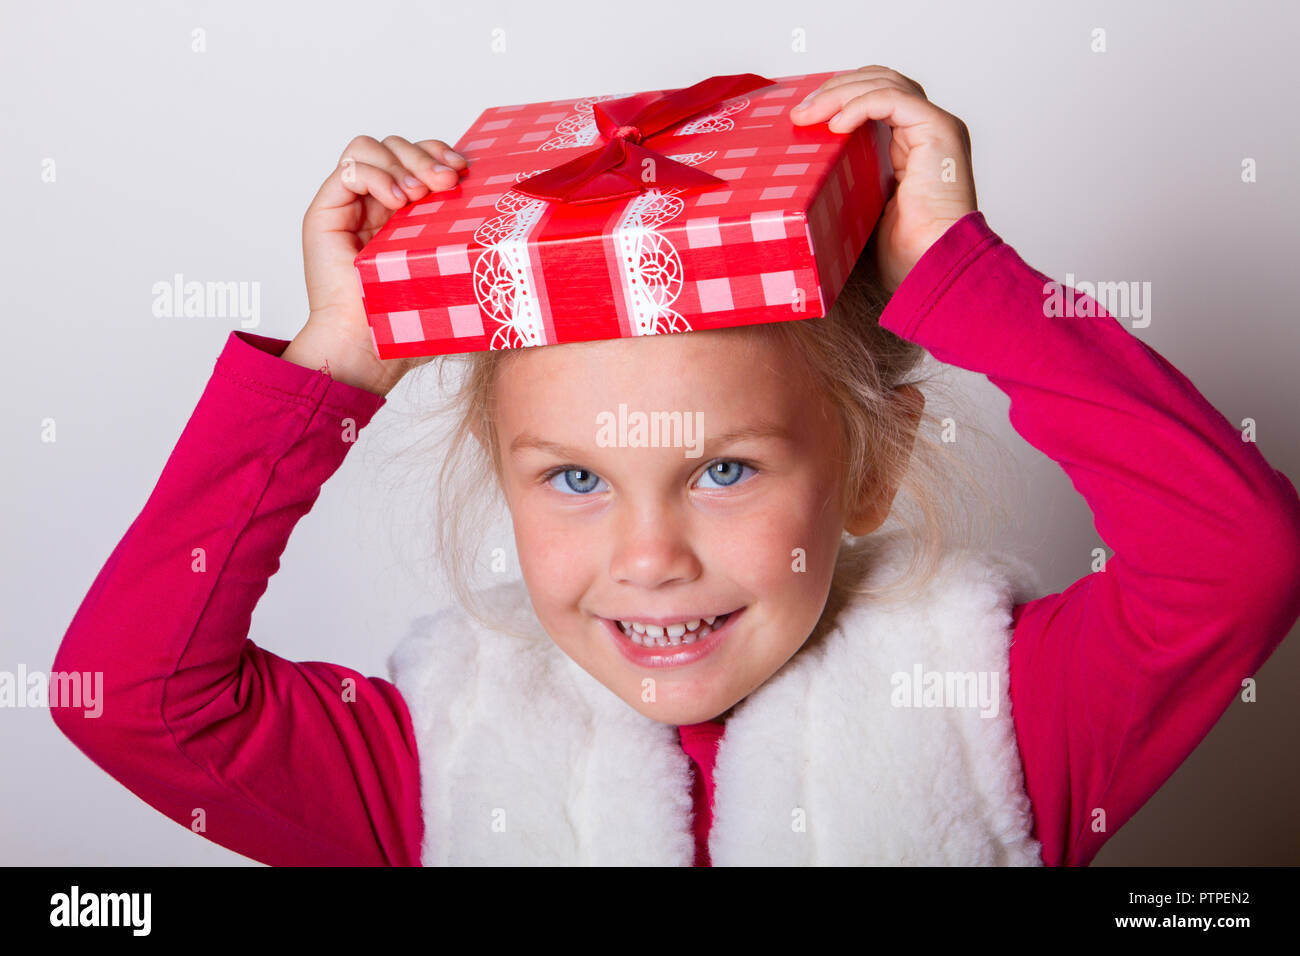 little girl in a red sweater and a fur vest clothed a lid from a gift box on her head as a hat. she laughs, rejoices, fools around, fun. New Year's co - Stock Image